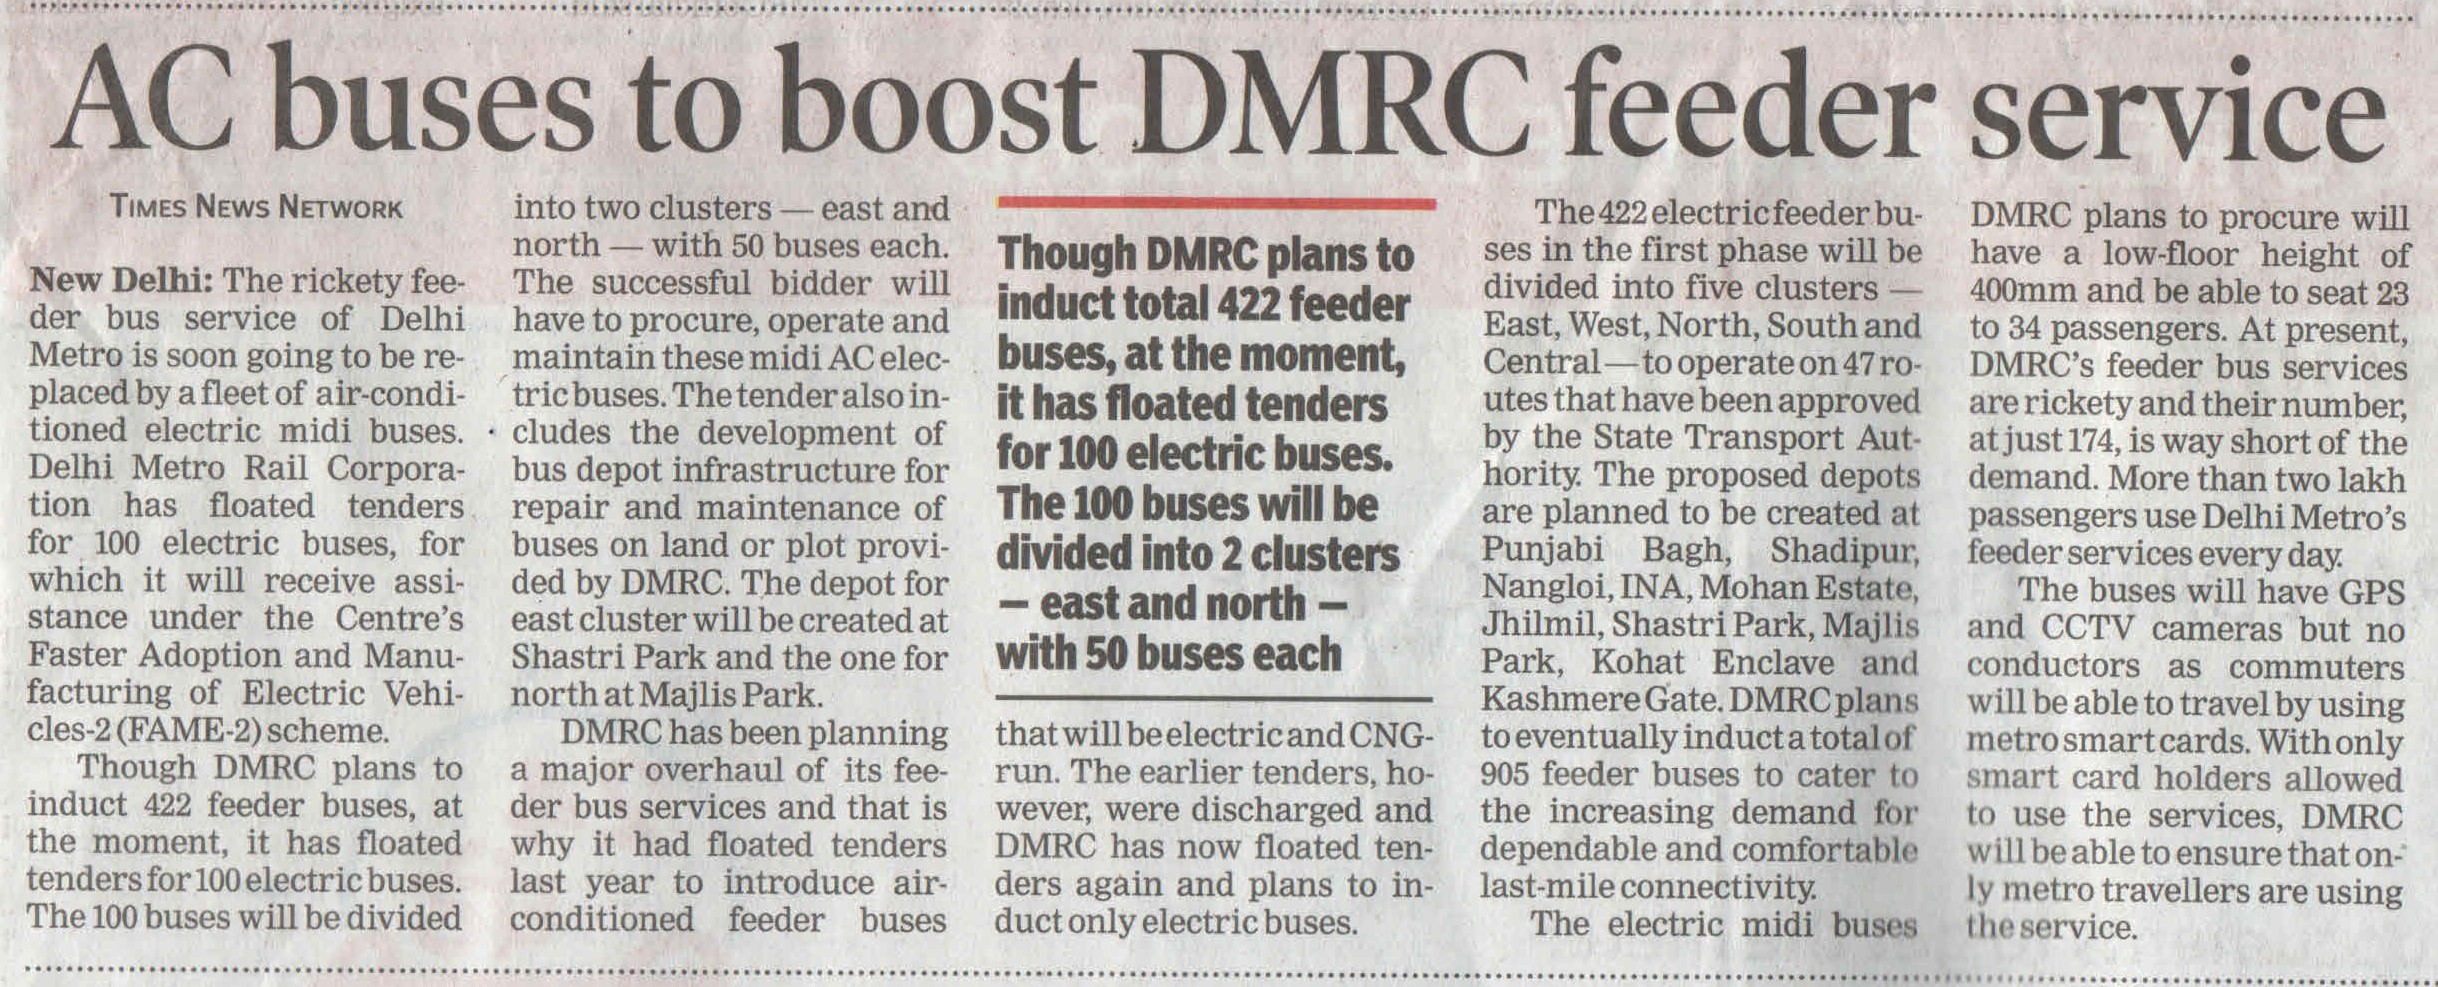 AC buses to boost DMRC feeder service